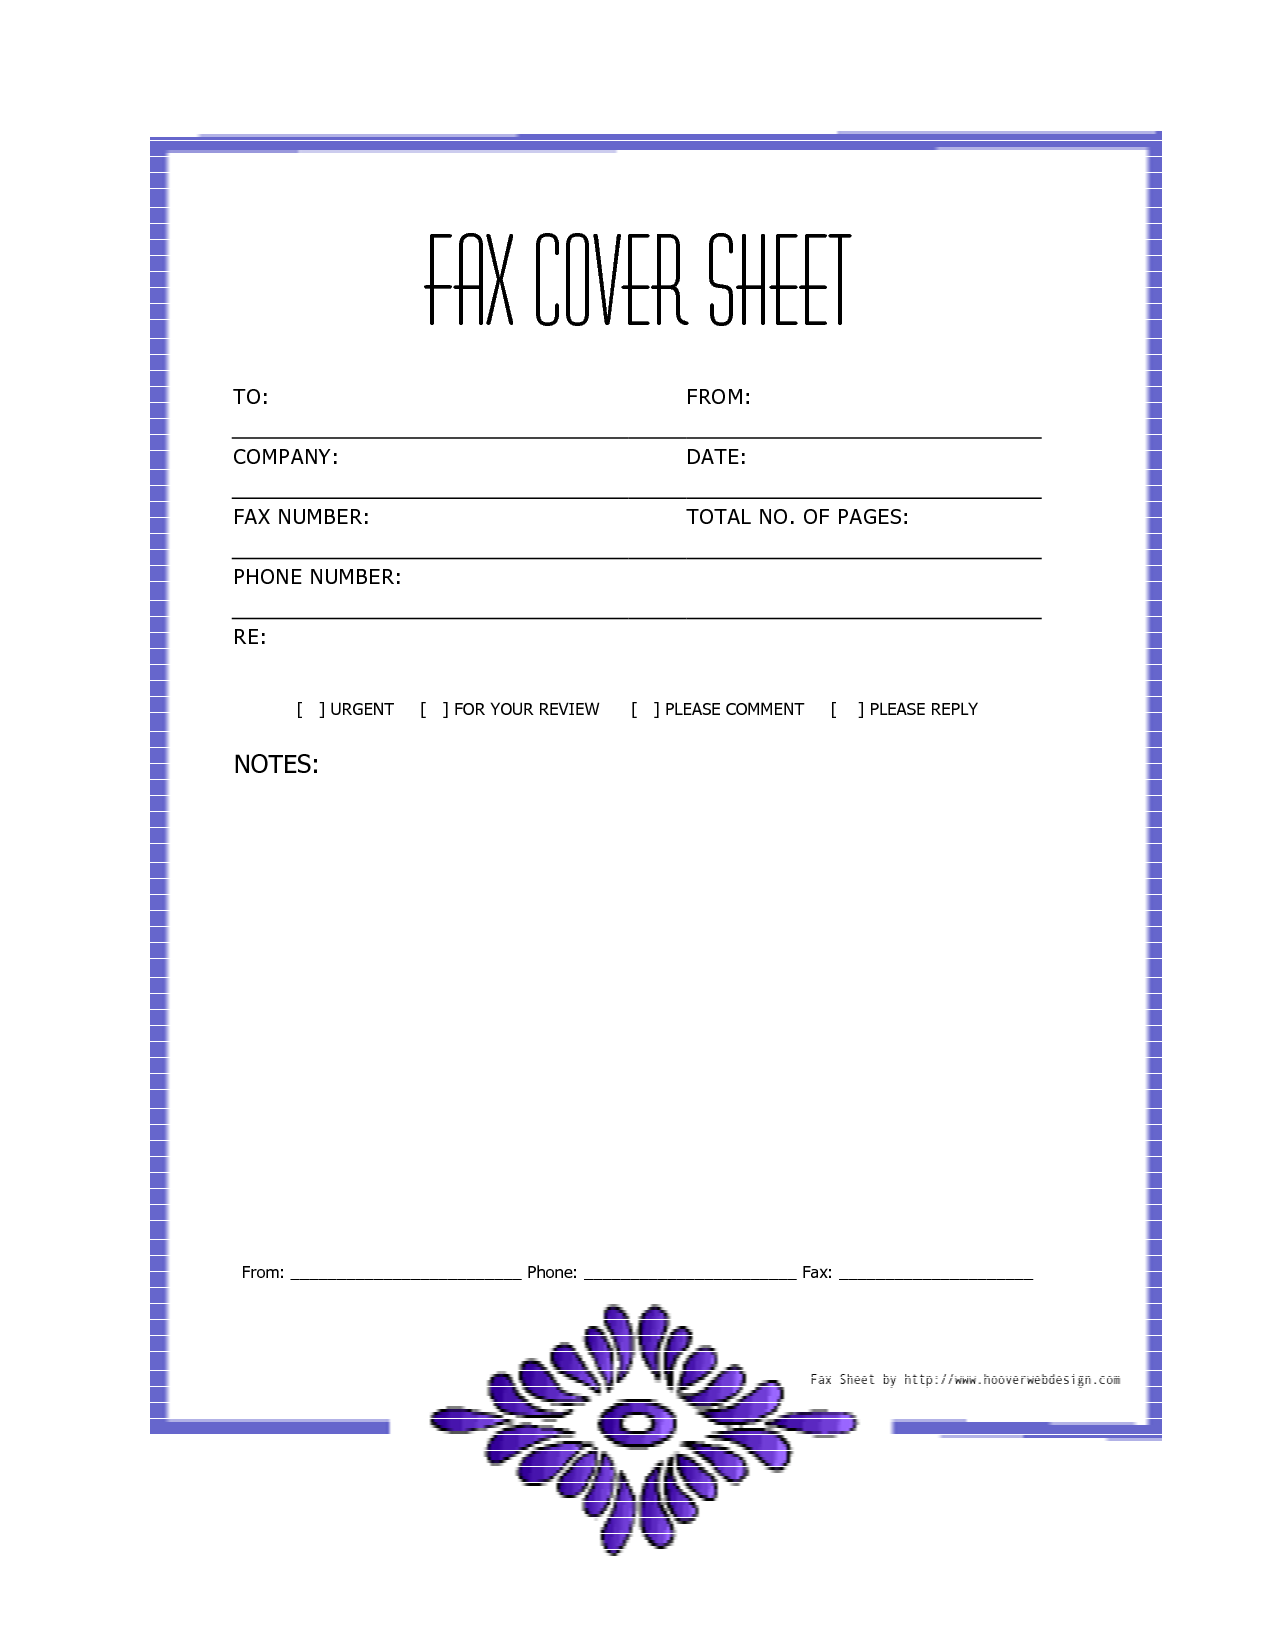 s fax covers sheets printable fax cover sheet s fax covers sheets printable fax cover sheet template elegant as